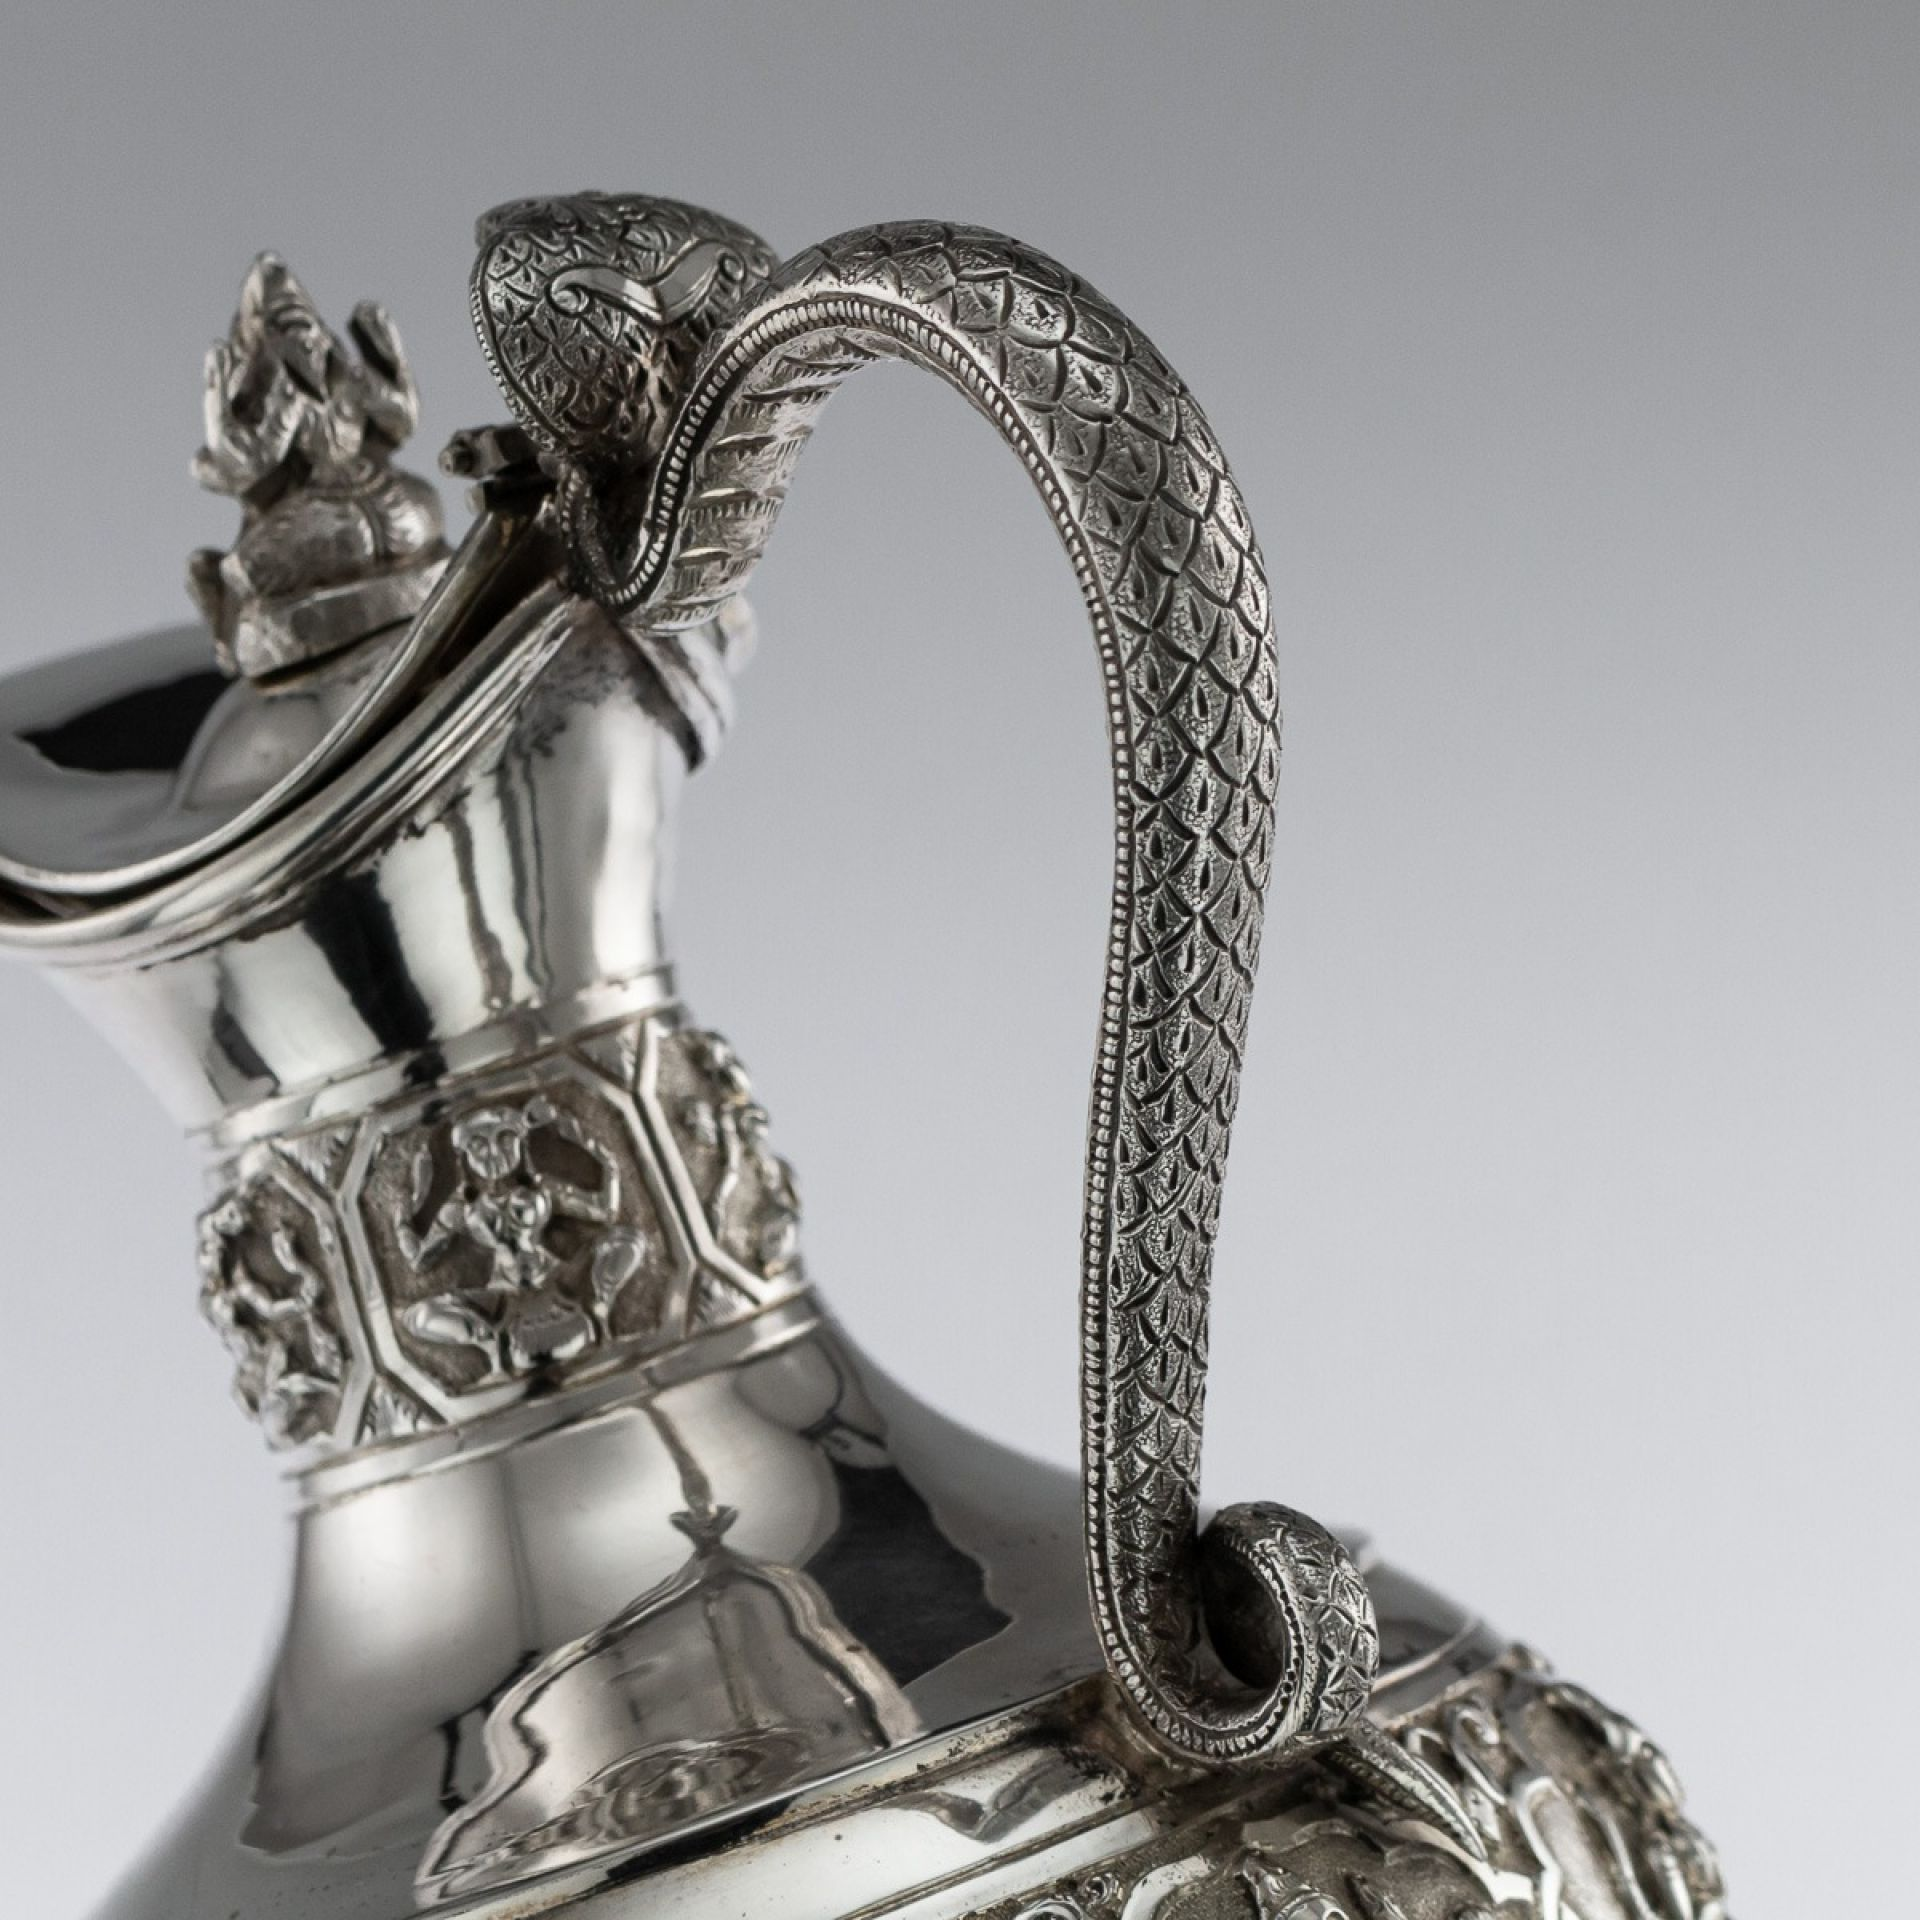 ANTIQUE 19thC INDIAN SOLID SILVER SWAMI EWER, MADRAS c.1880